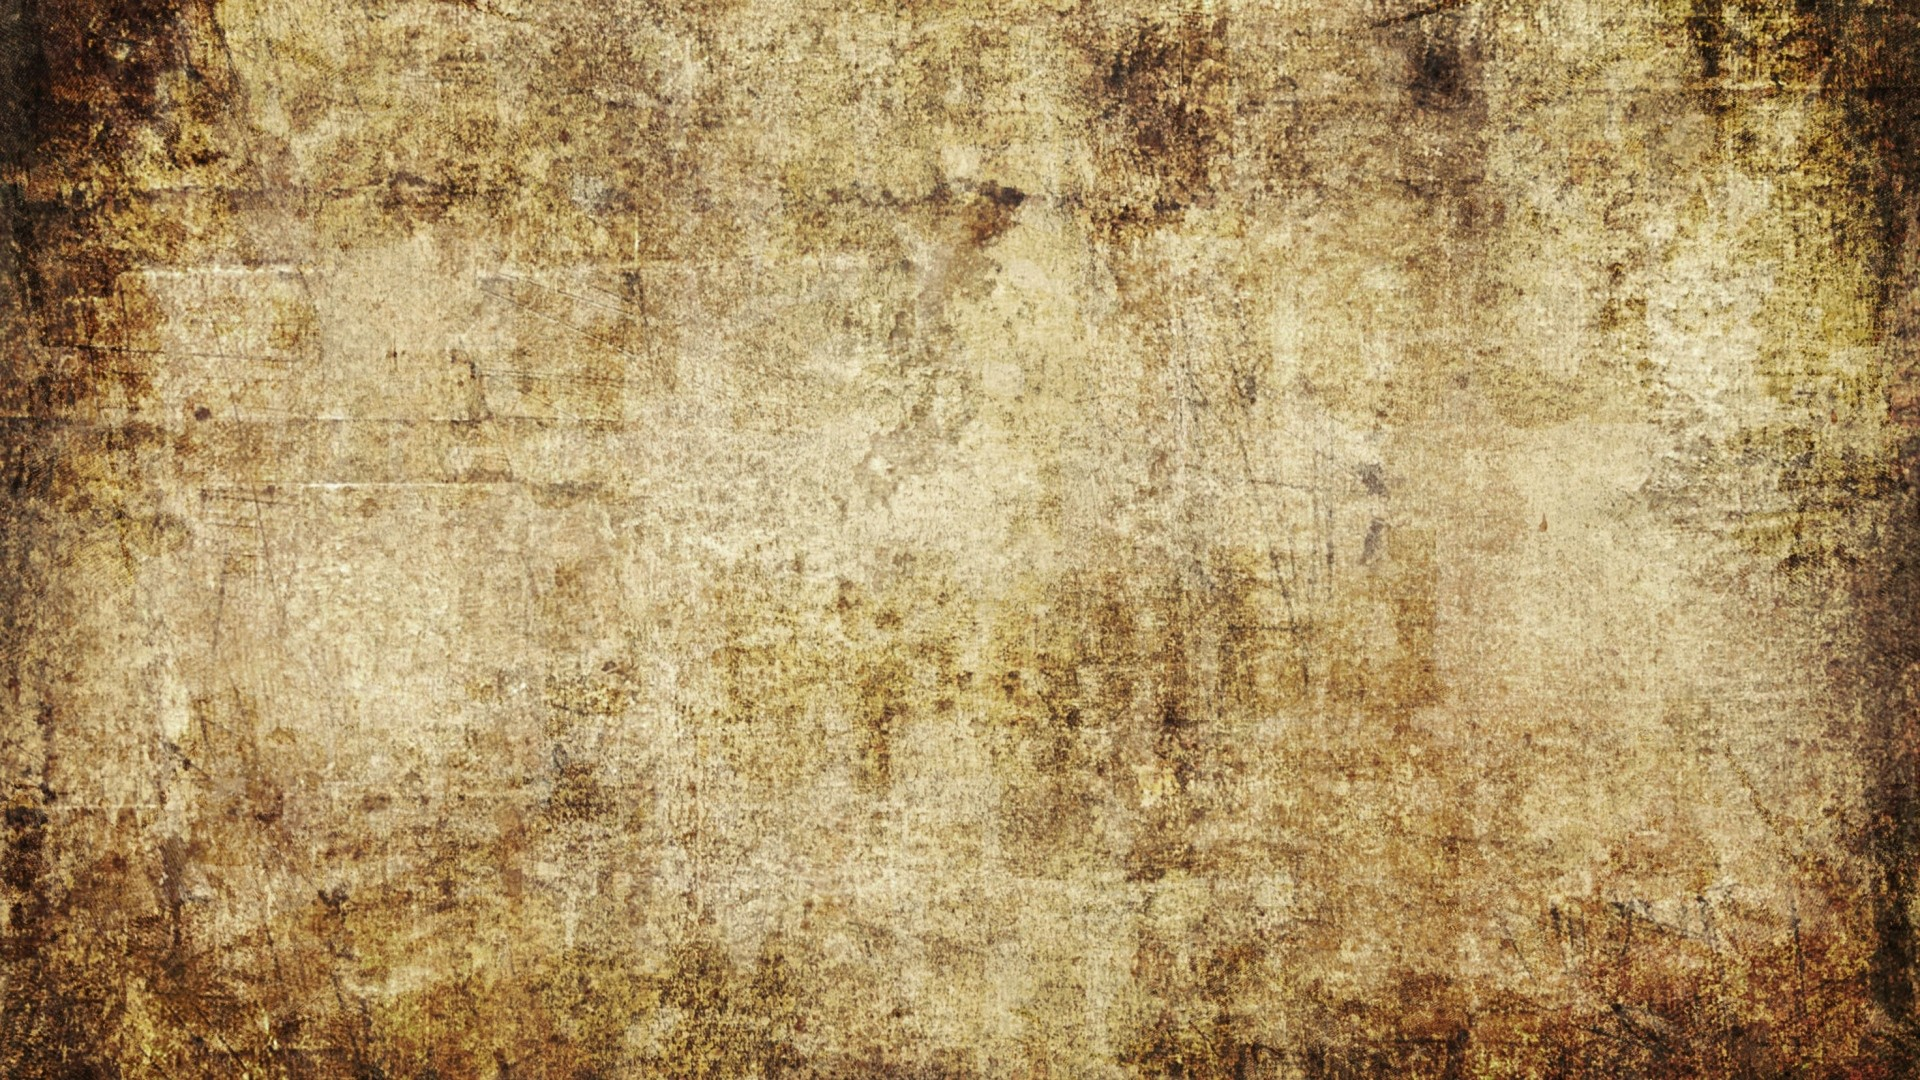 dirt background ·① download free stunning full hd wallpapers for